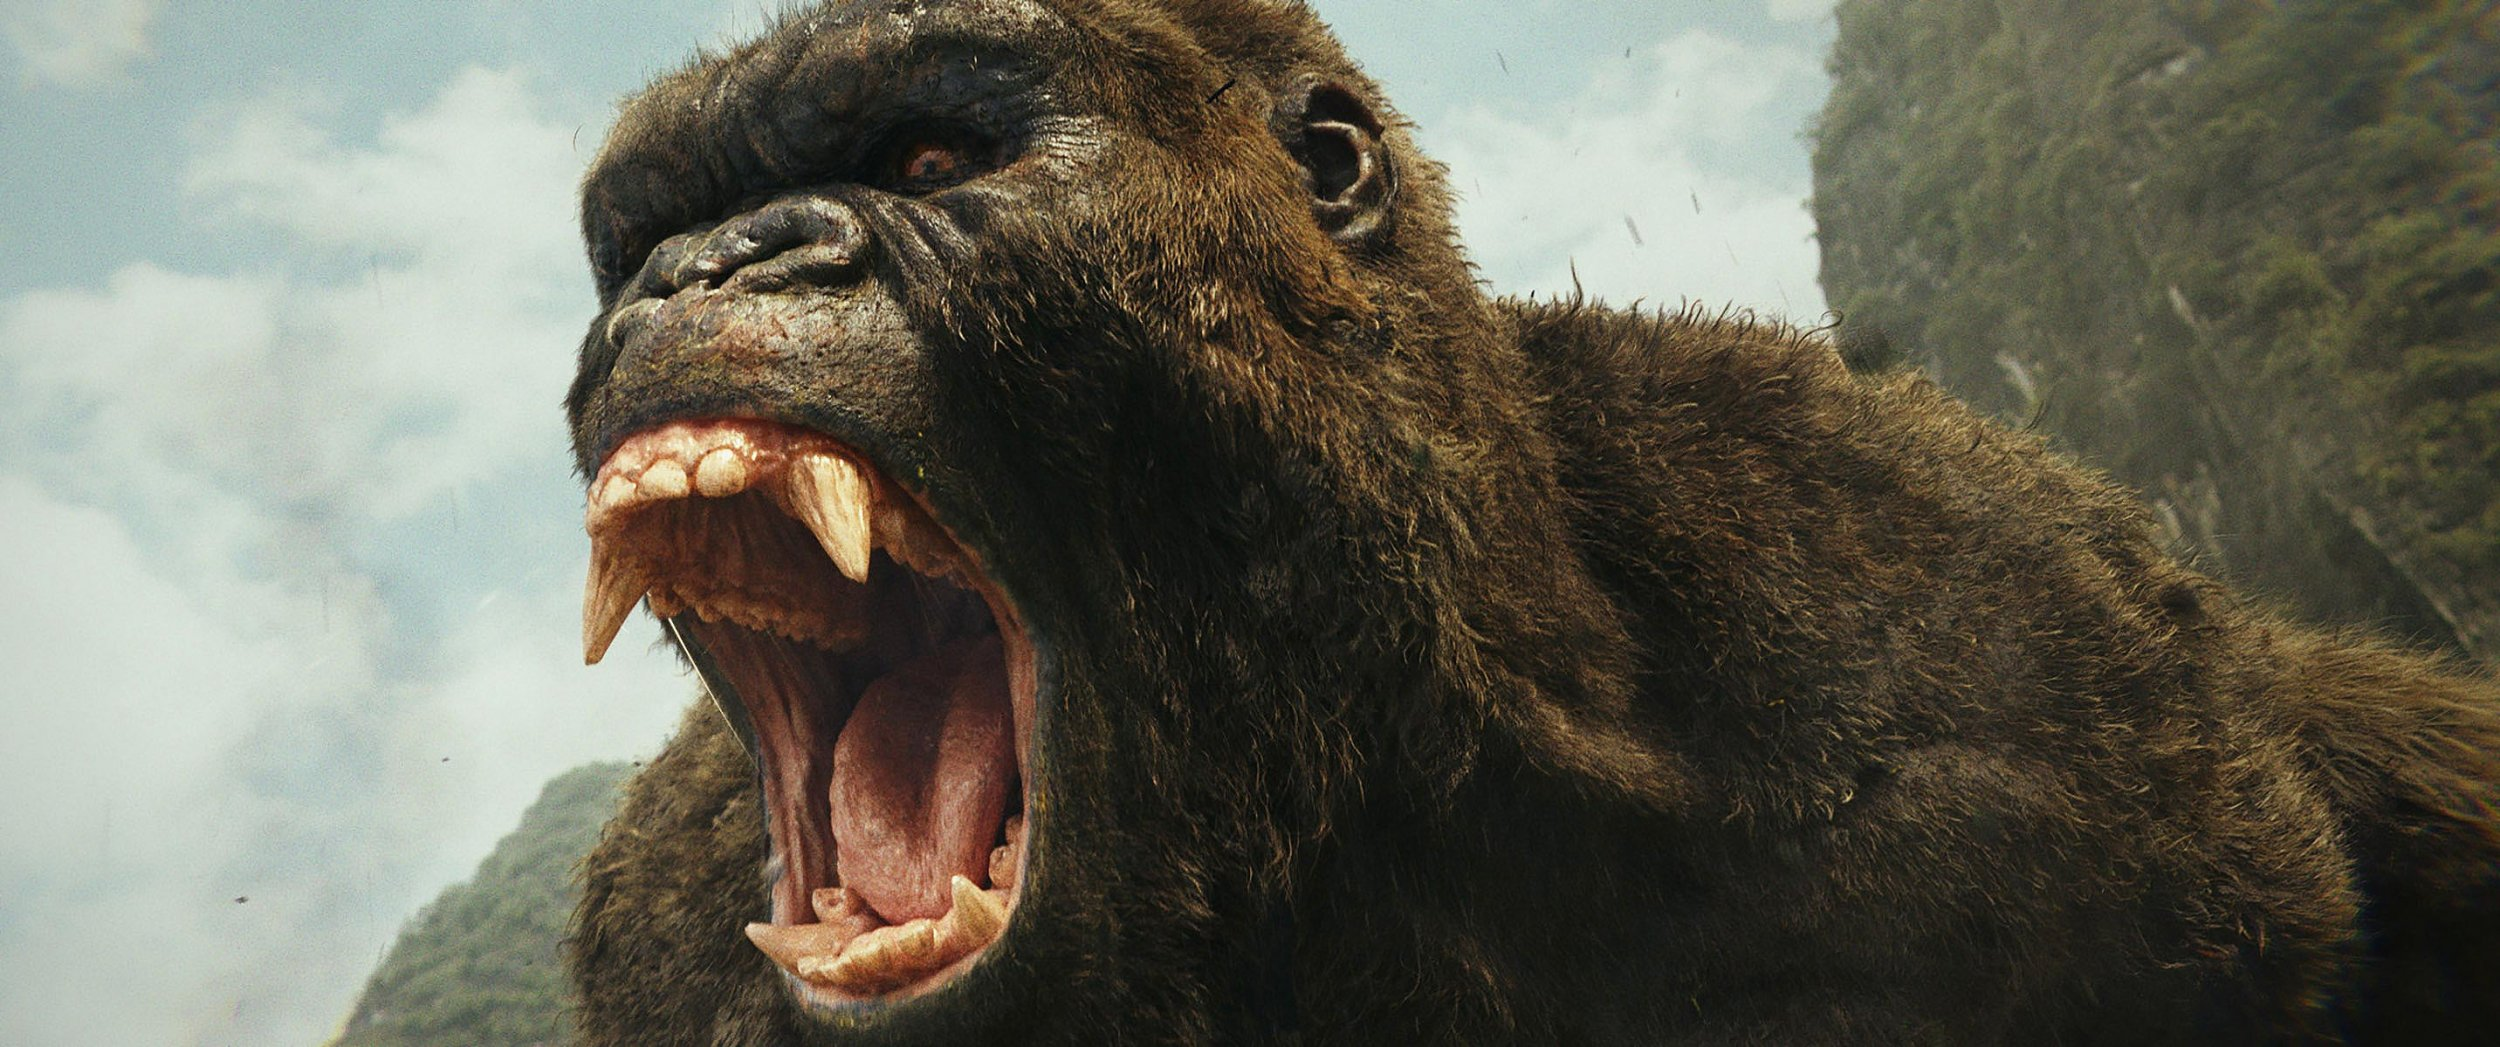 Kong: Skull Island: Review: John C. Reilly Outacts The Ape In 'Kong: Skull Island